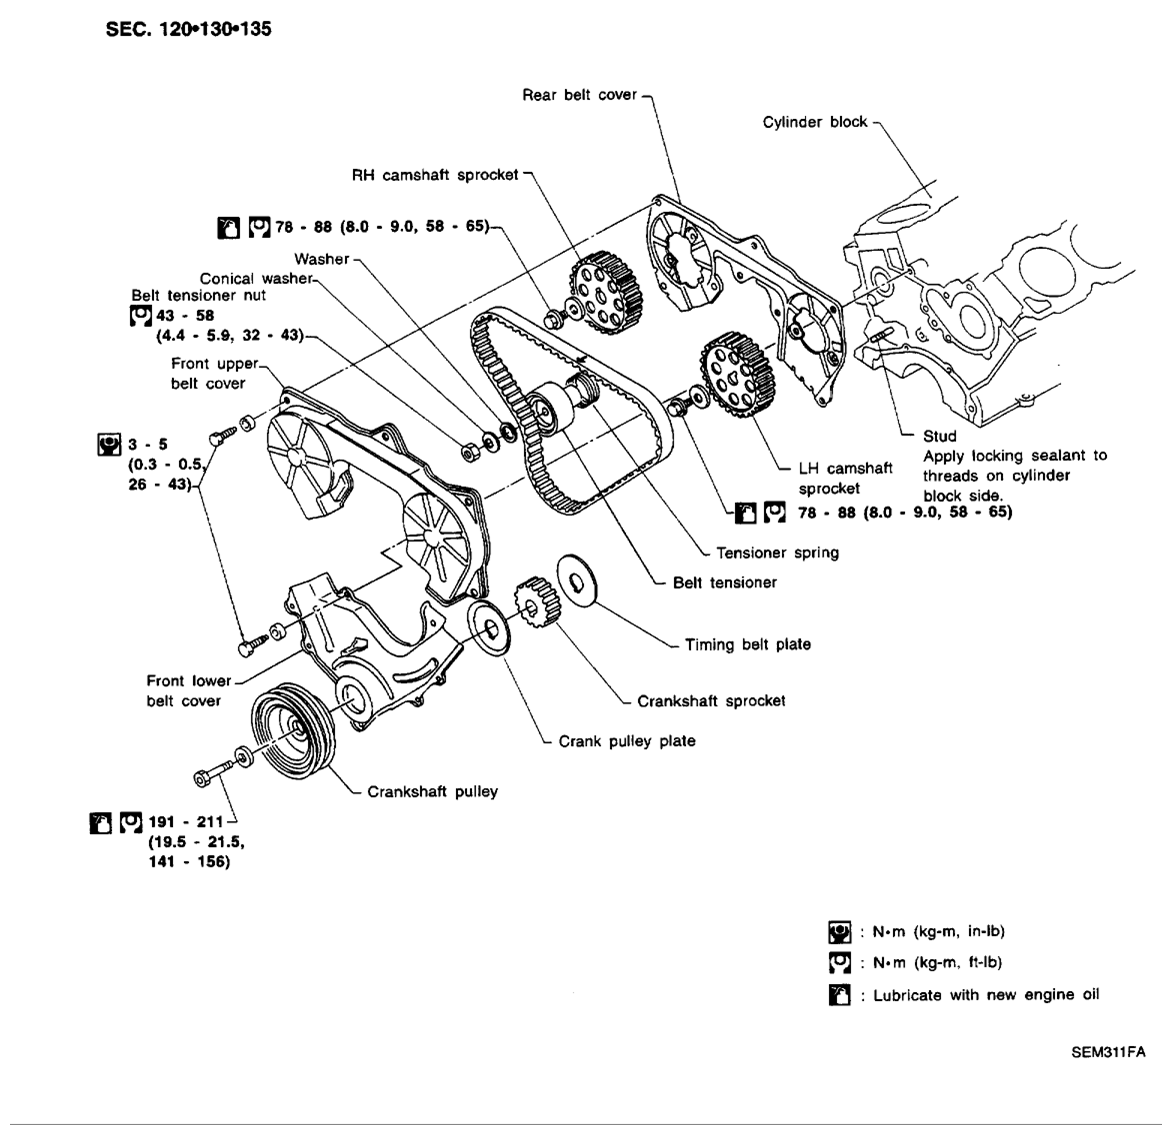 1x8yv 05 Nissan Altima Dealer Says Short Harness besides Esqto01 moreover 87u1b Nissan Versa 2009 Nissan Versa Automatic Transmission Wont further 85qtf Crv 2001 Crv Sunroof Leaks Front furthermore Water Pump Cooling Fan Thermostat. on 87 nissan diagram